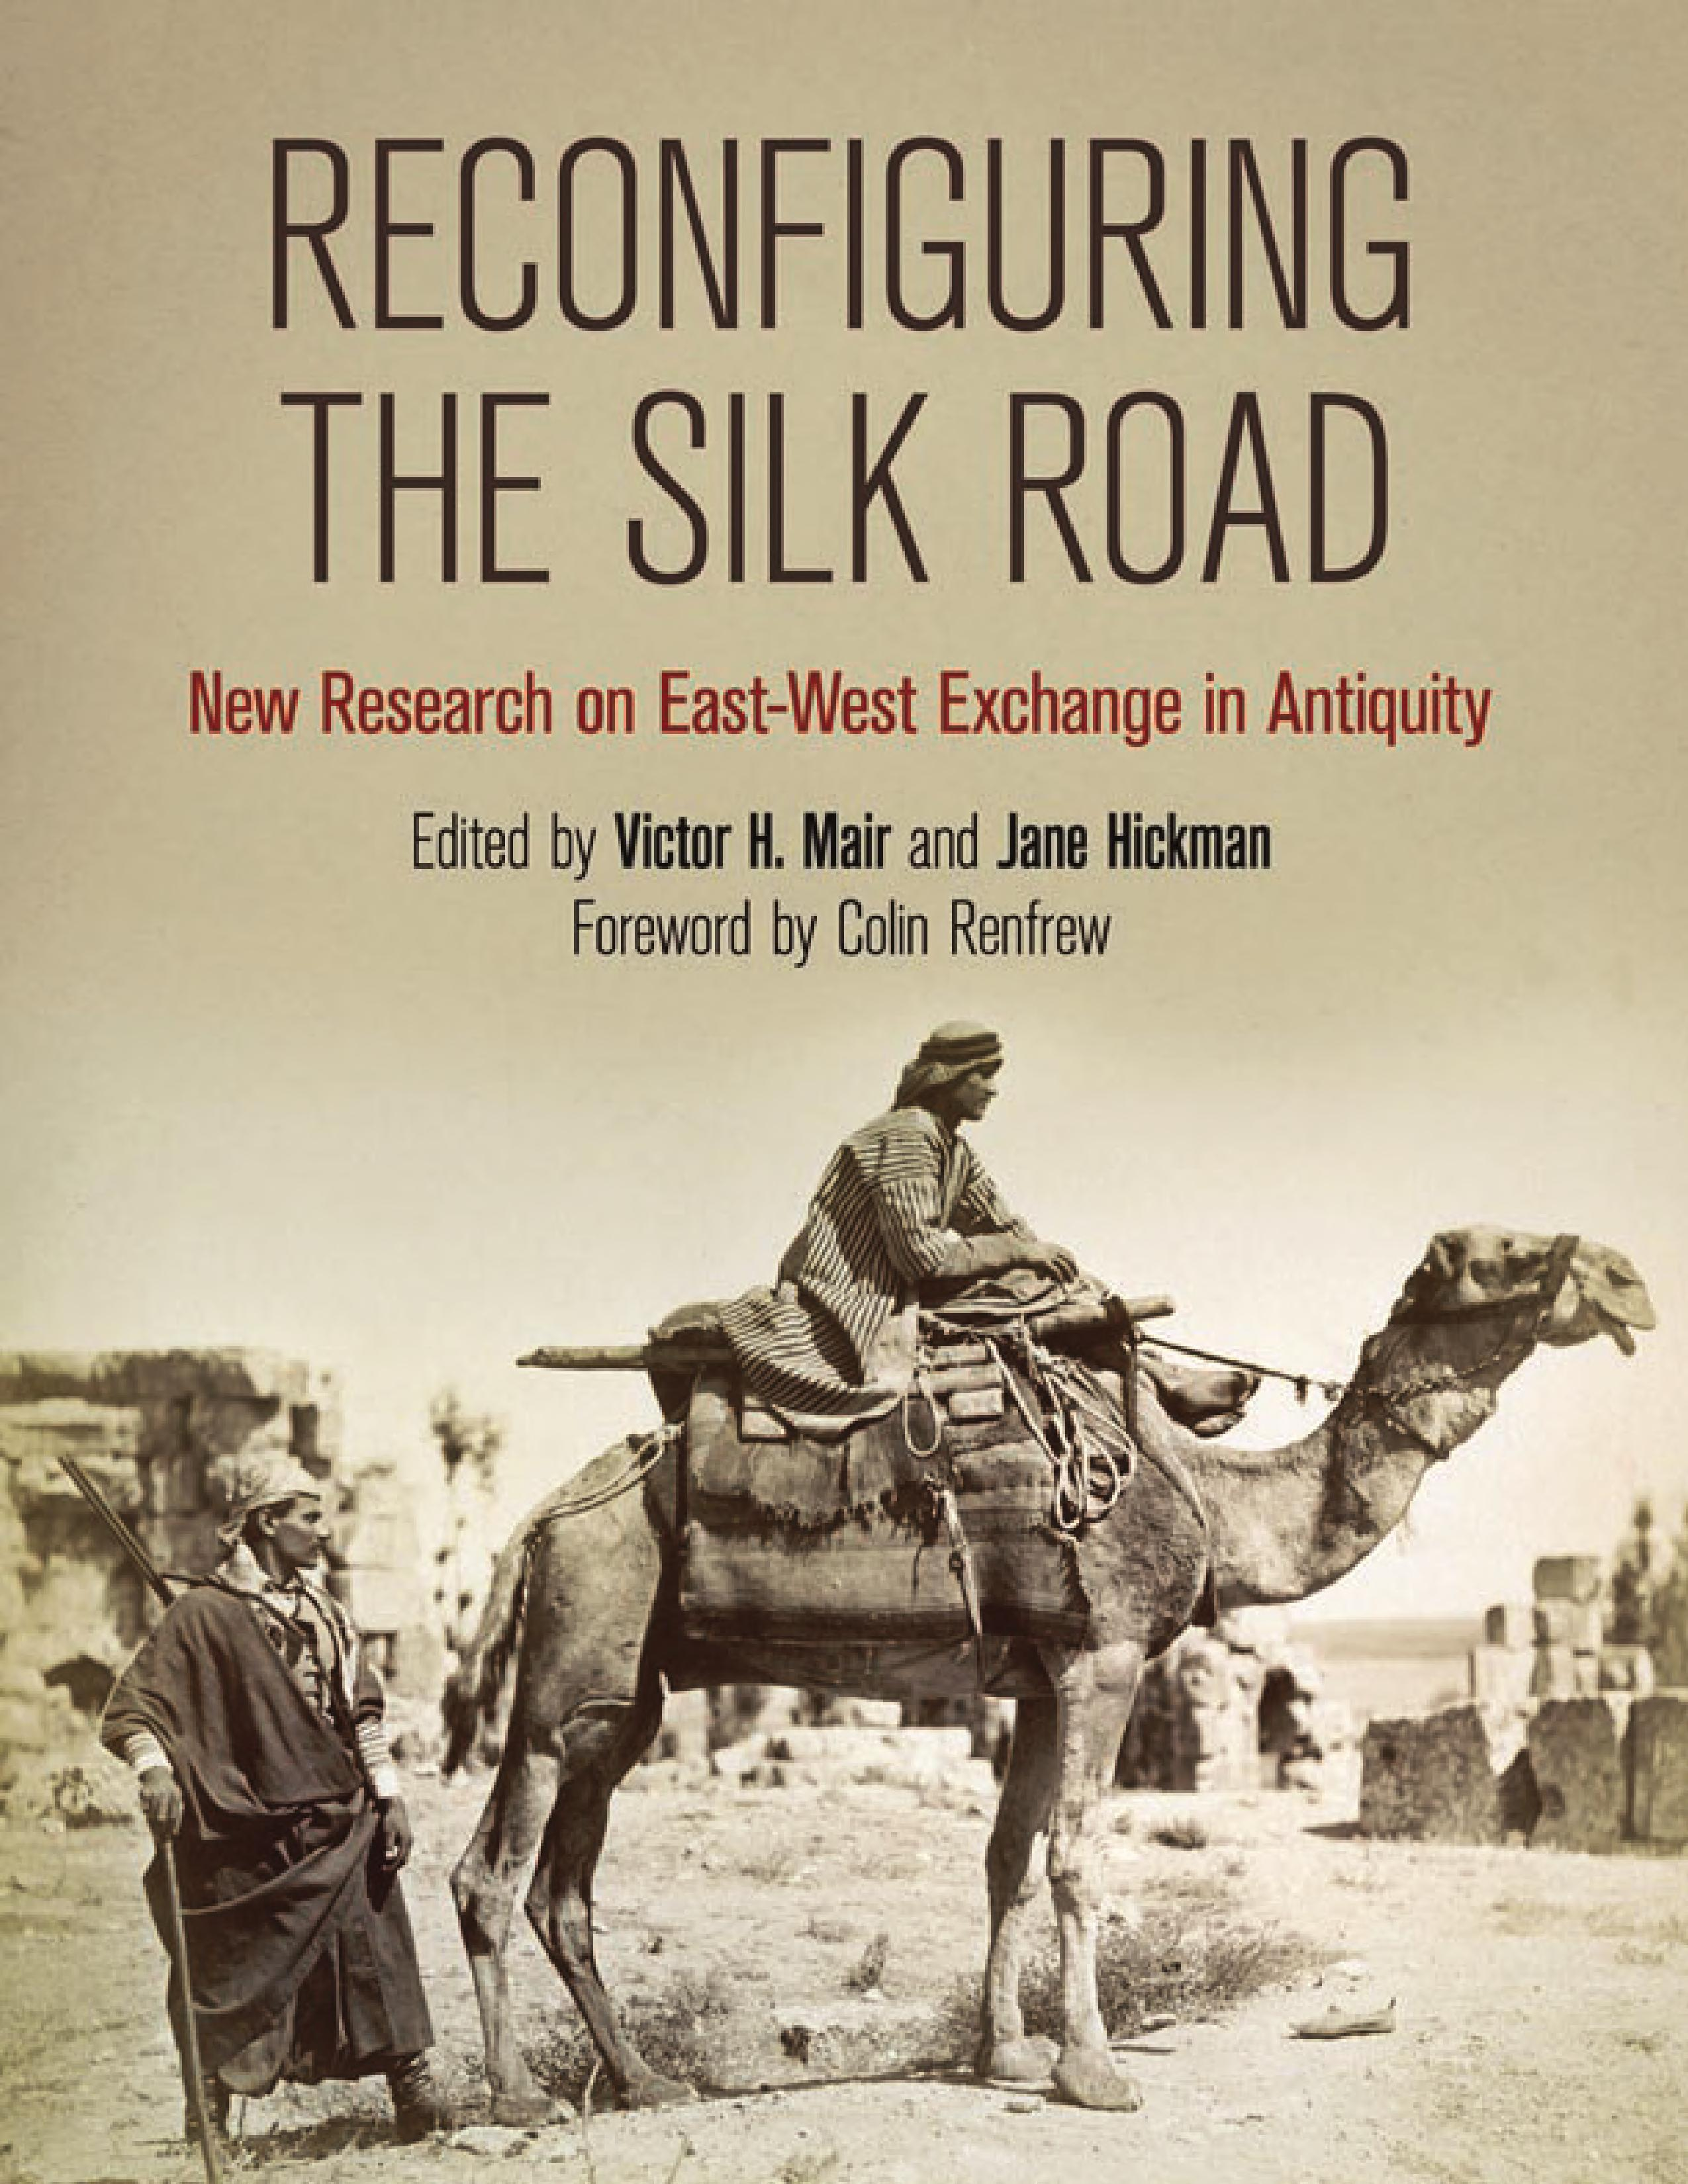 Reconfiguring the Silk Road the Middle Ages, a